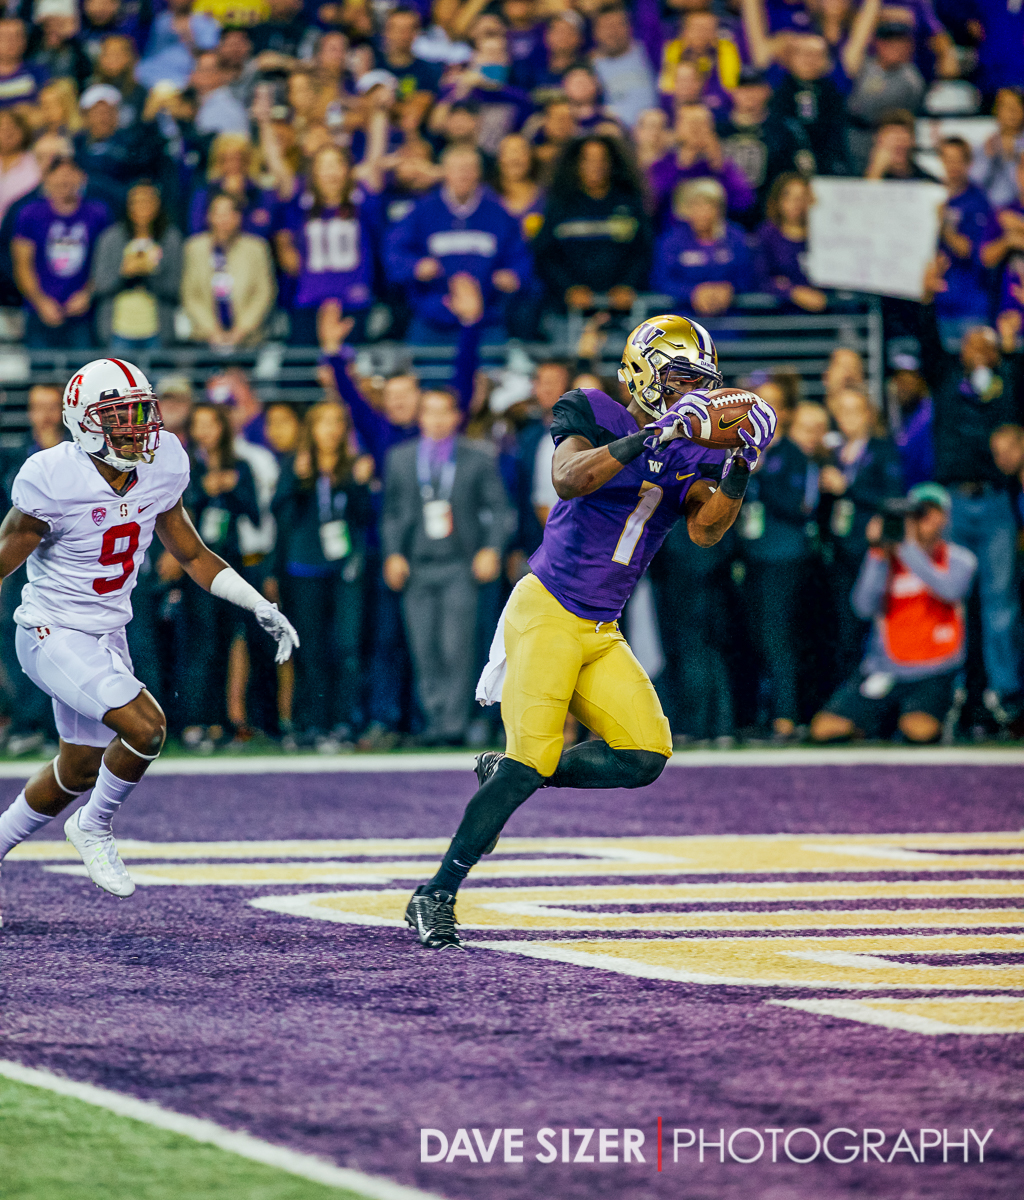 John Ross with the touchdown grab.